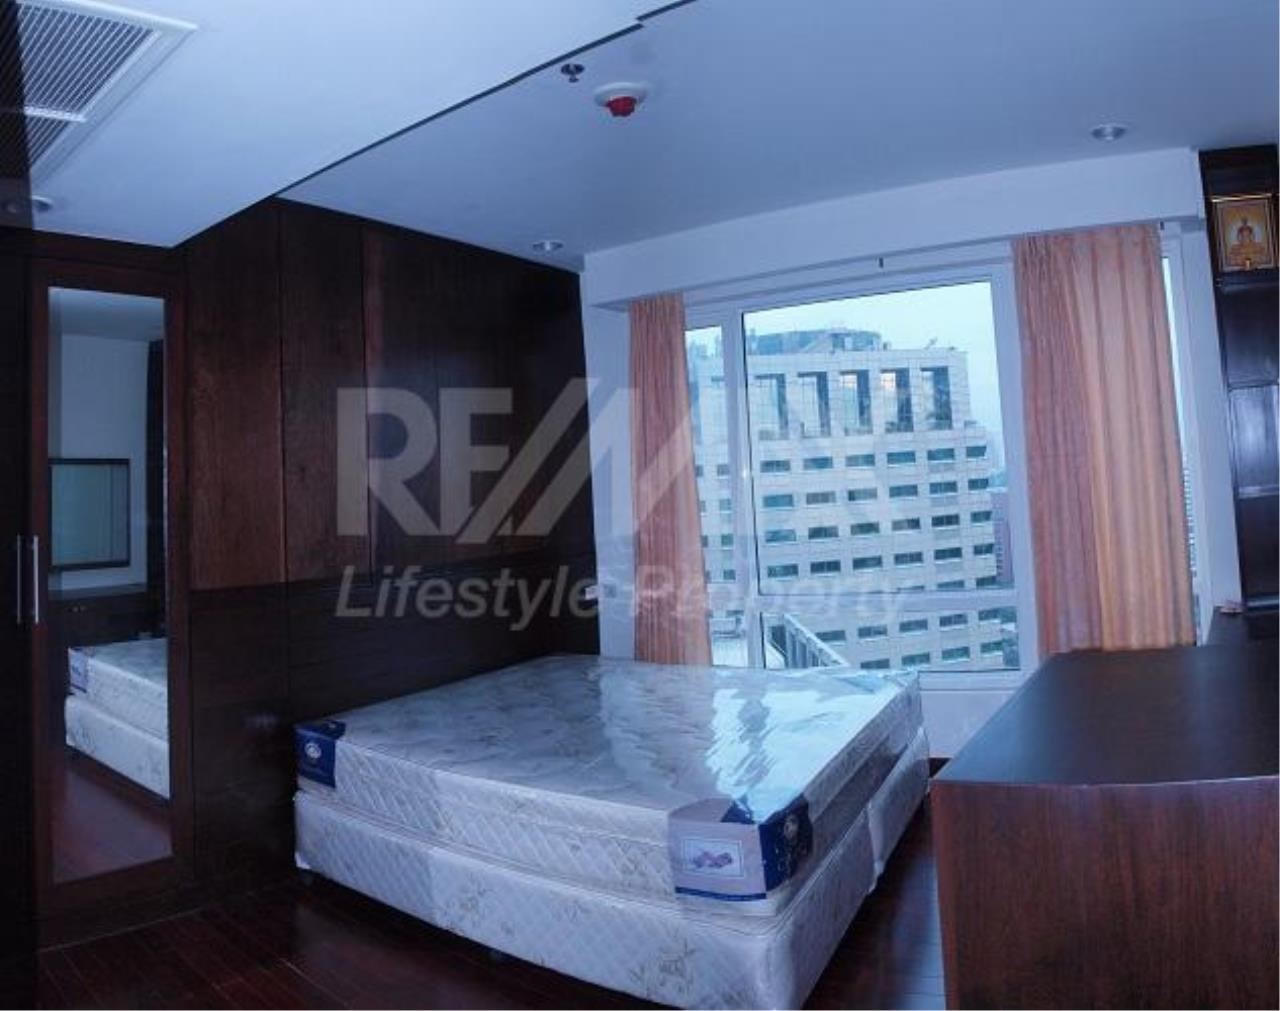 RE/MAX LifeStyle Property Agency's Baan Rajprasong 3